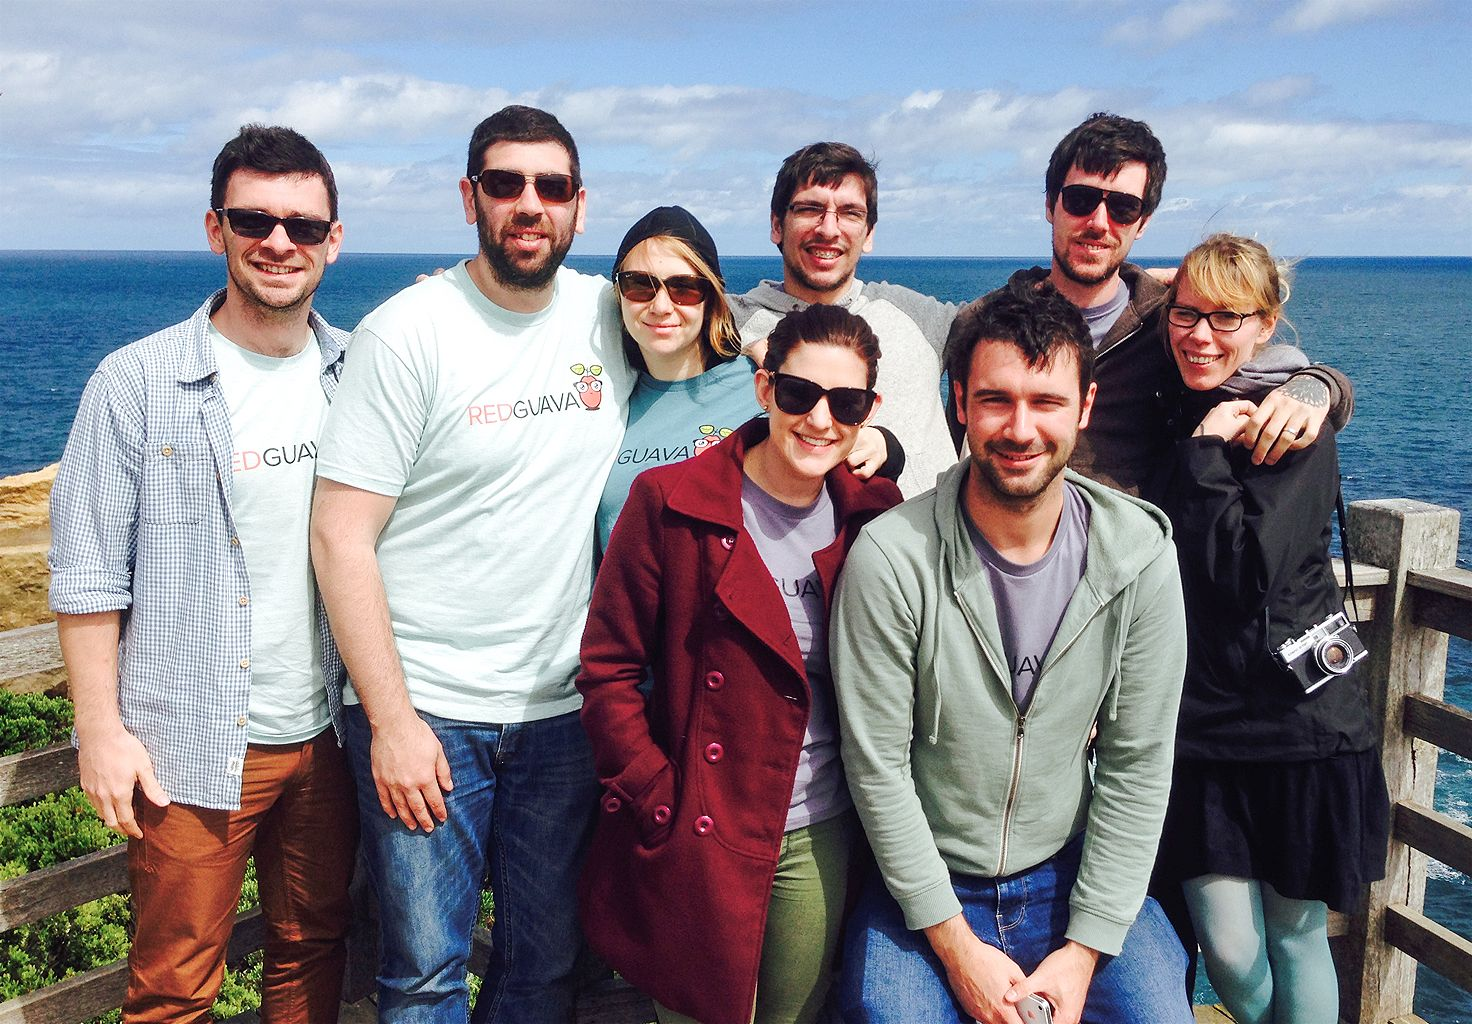 A group photo of members of the Cliniko team during a trip to Apollo Bay, Australia.